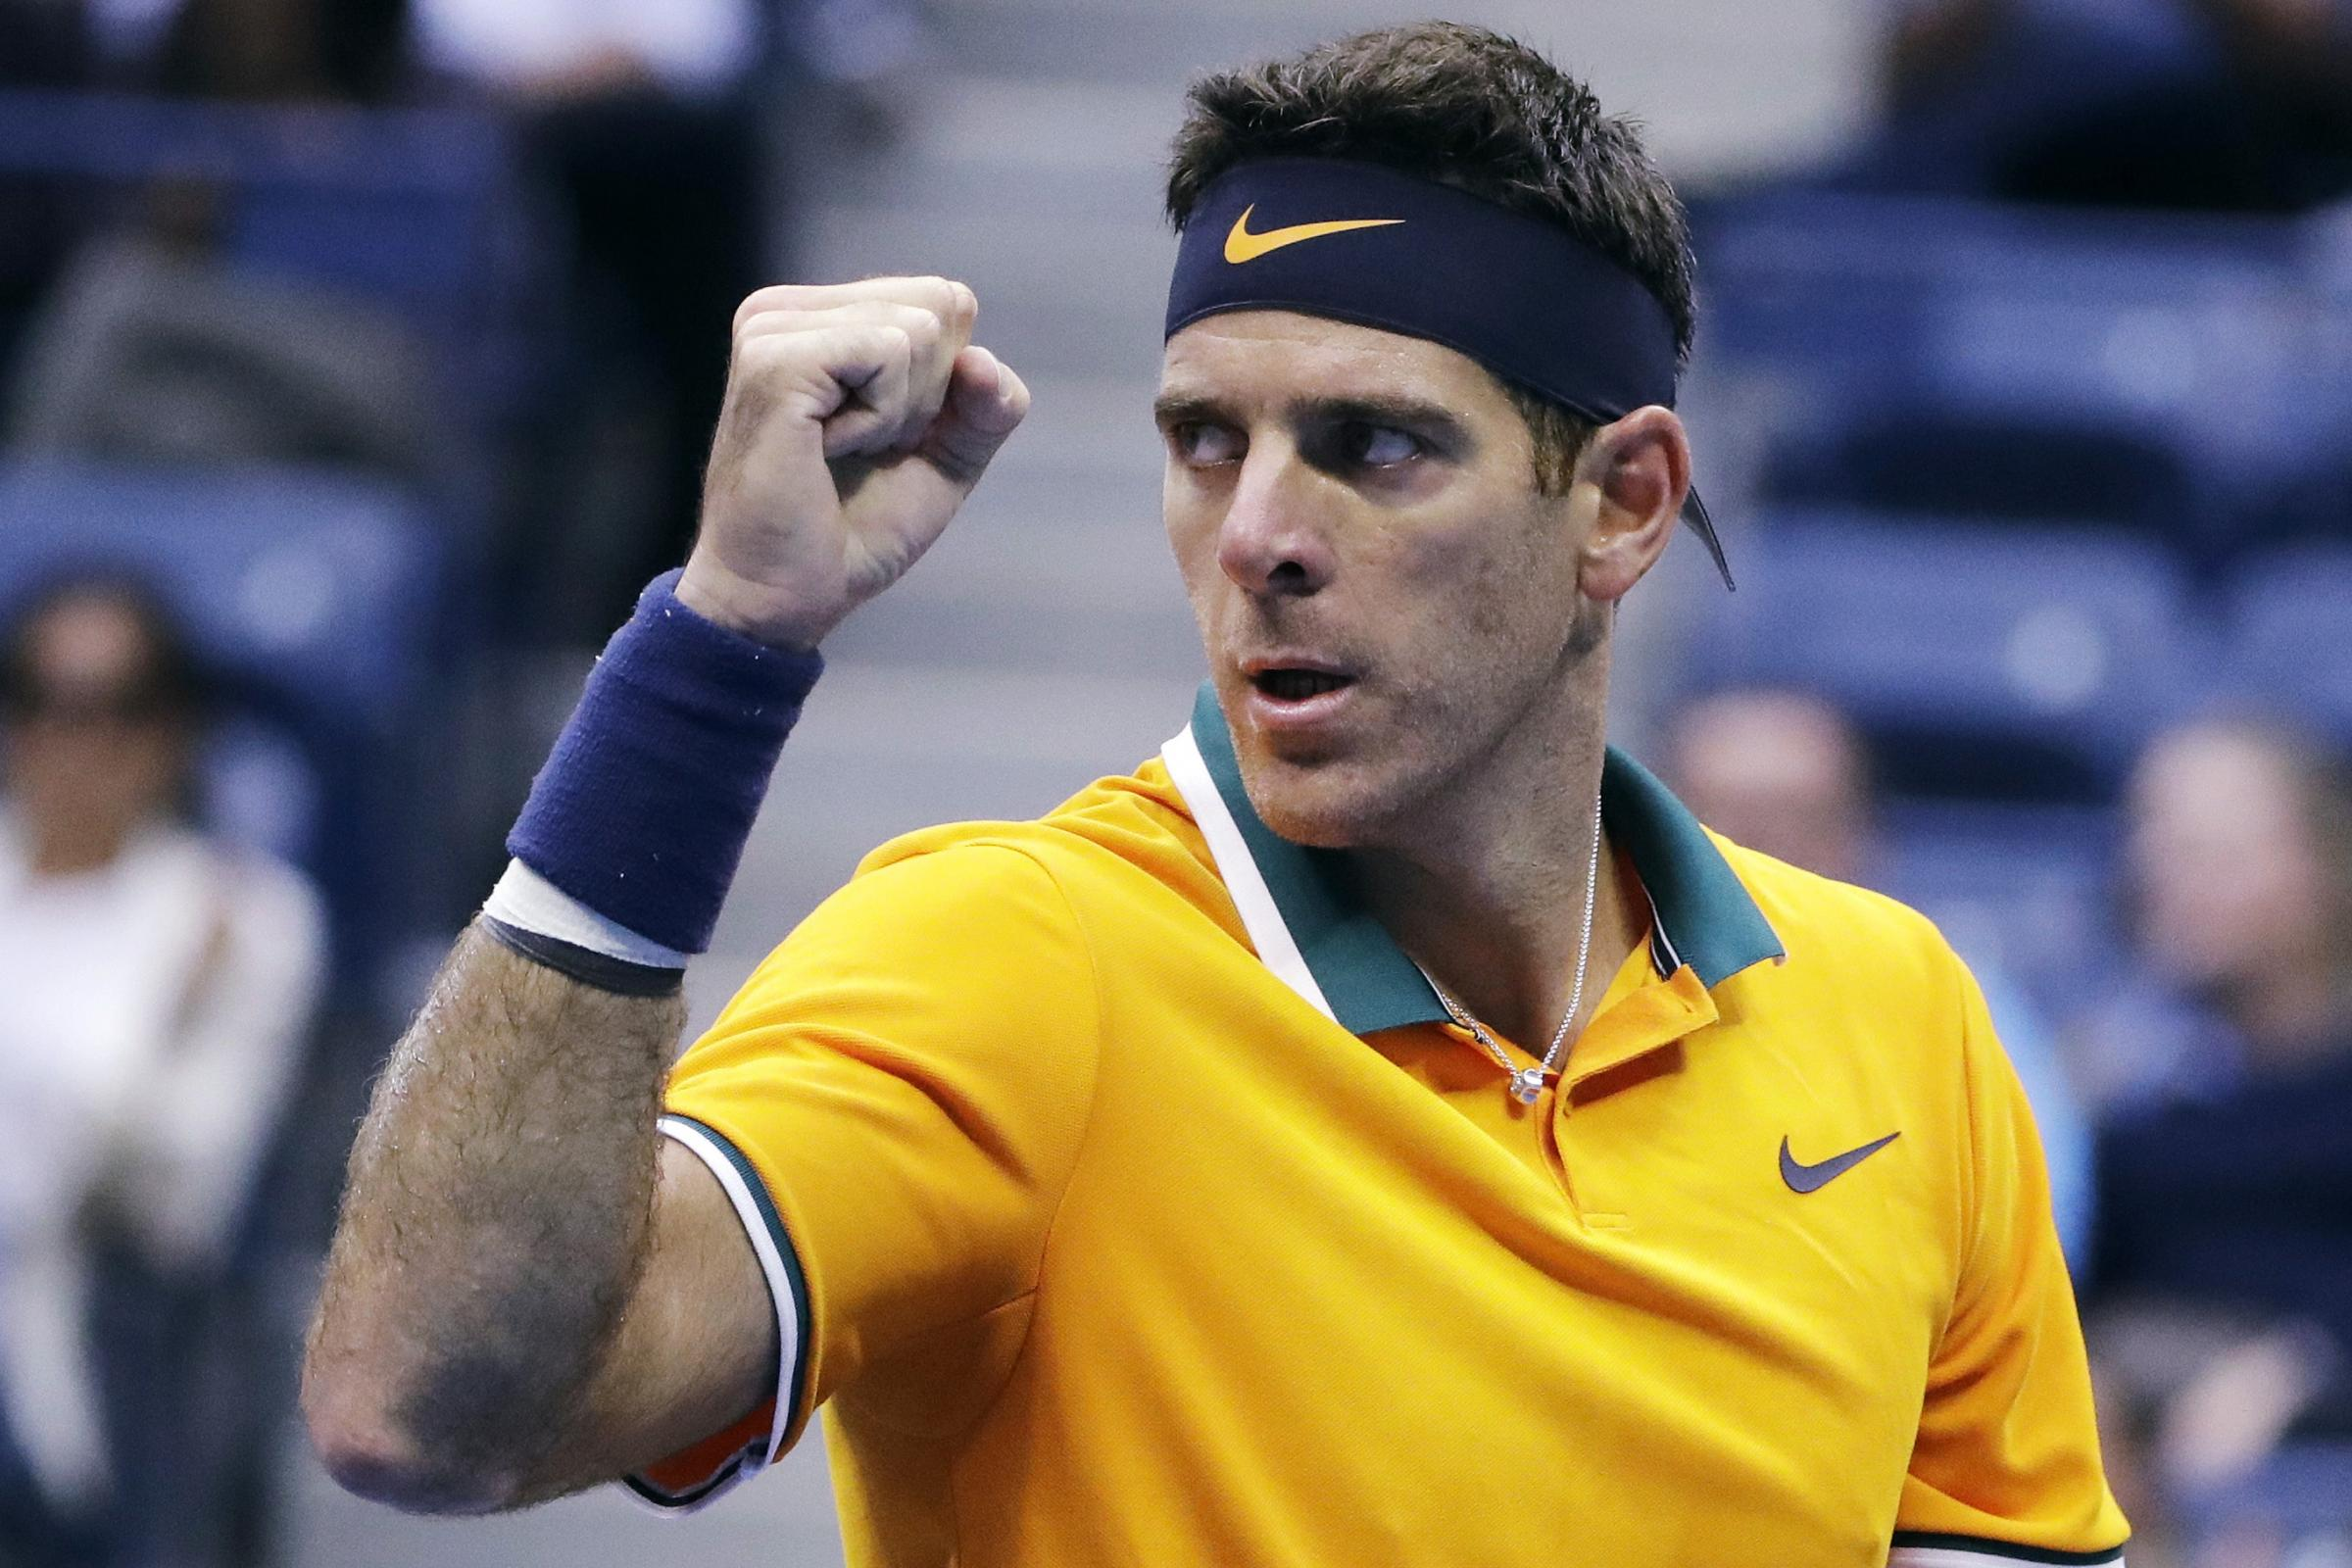 Juan Martin del Potro is bidding for a second grand slam title nine years after his first